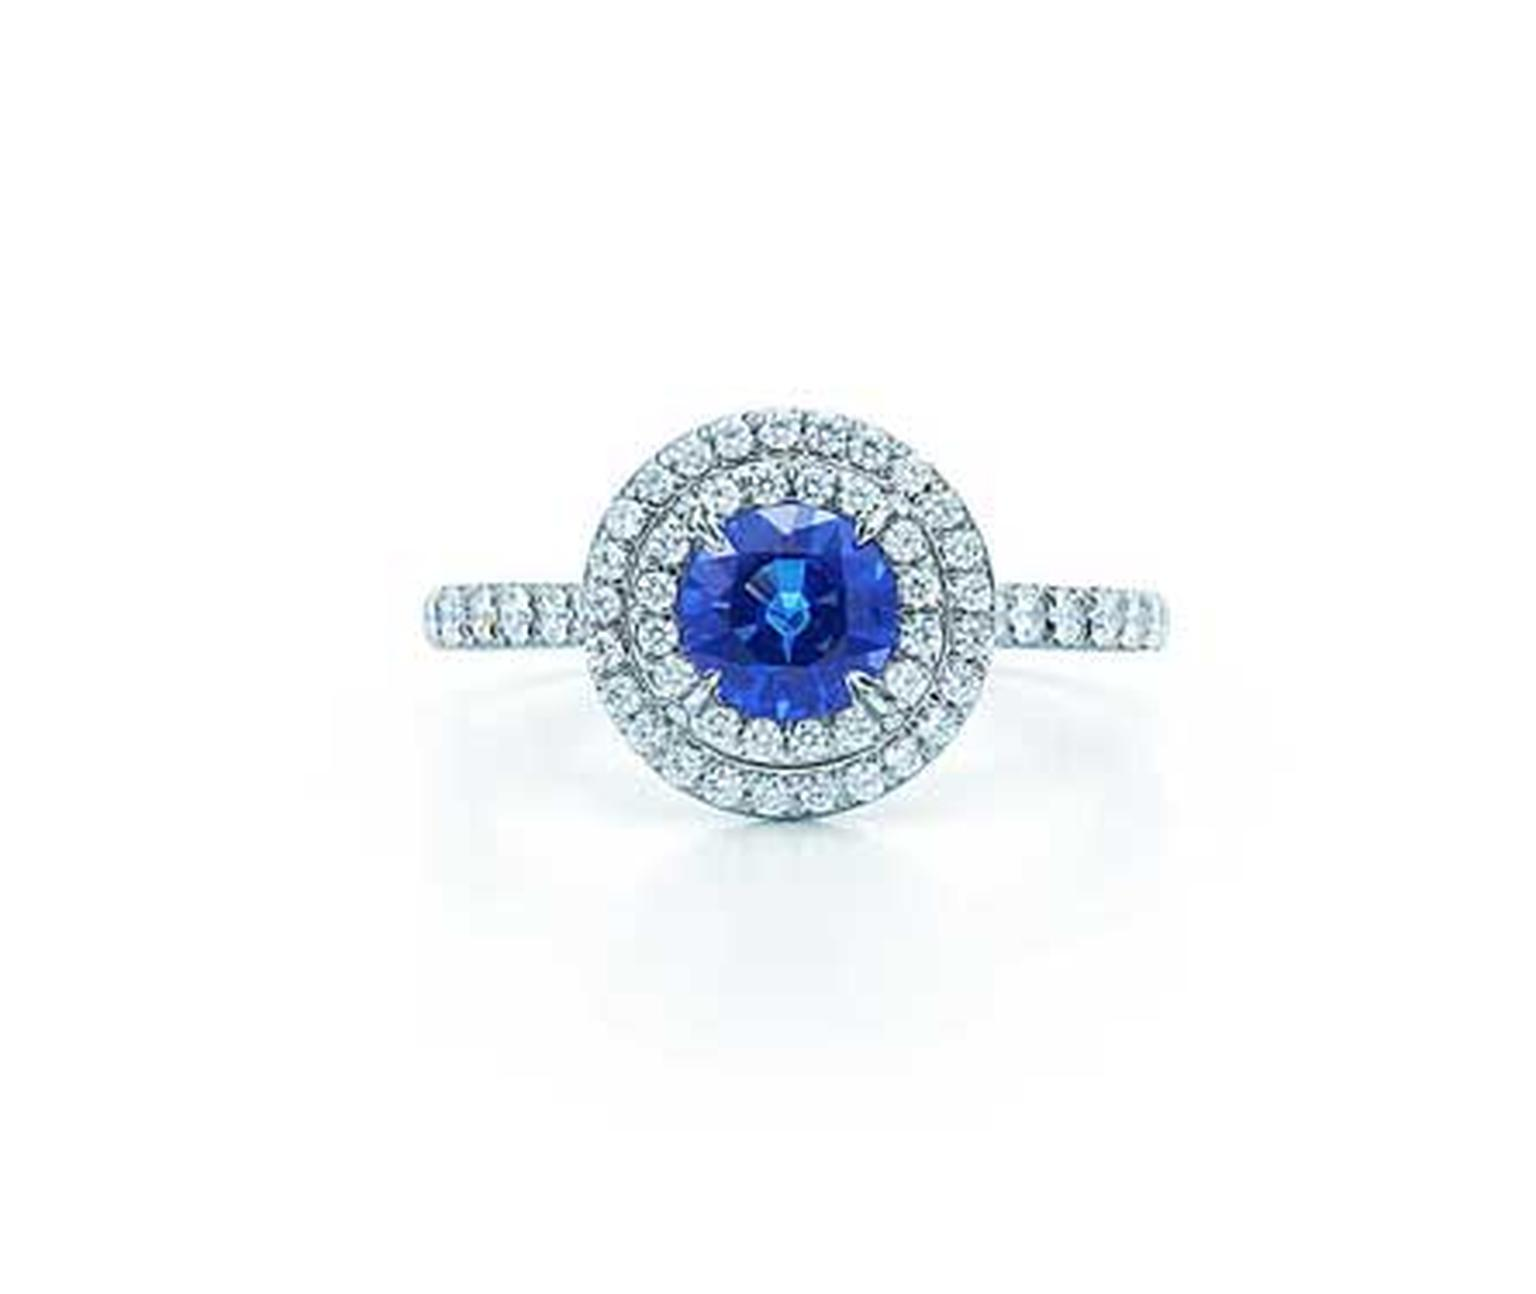 Tiffany & Co. blue sapphire and diamond Soleste ring (£6,350).